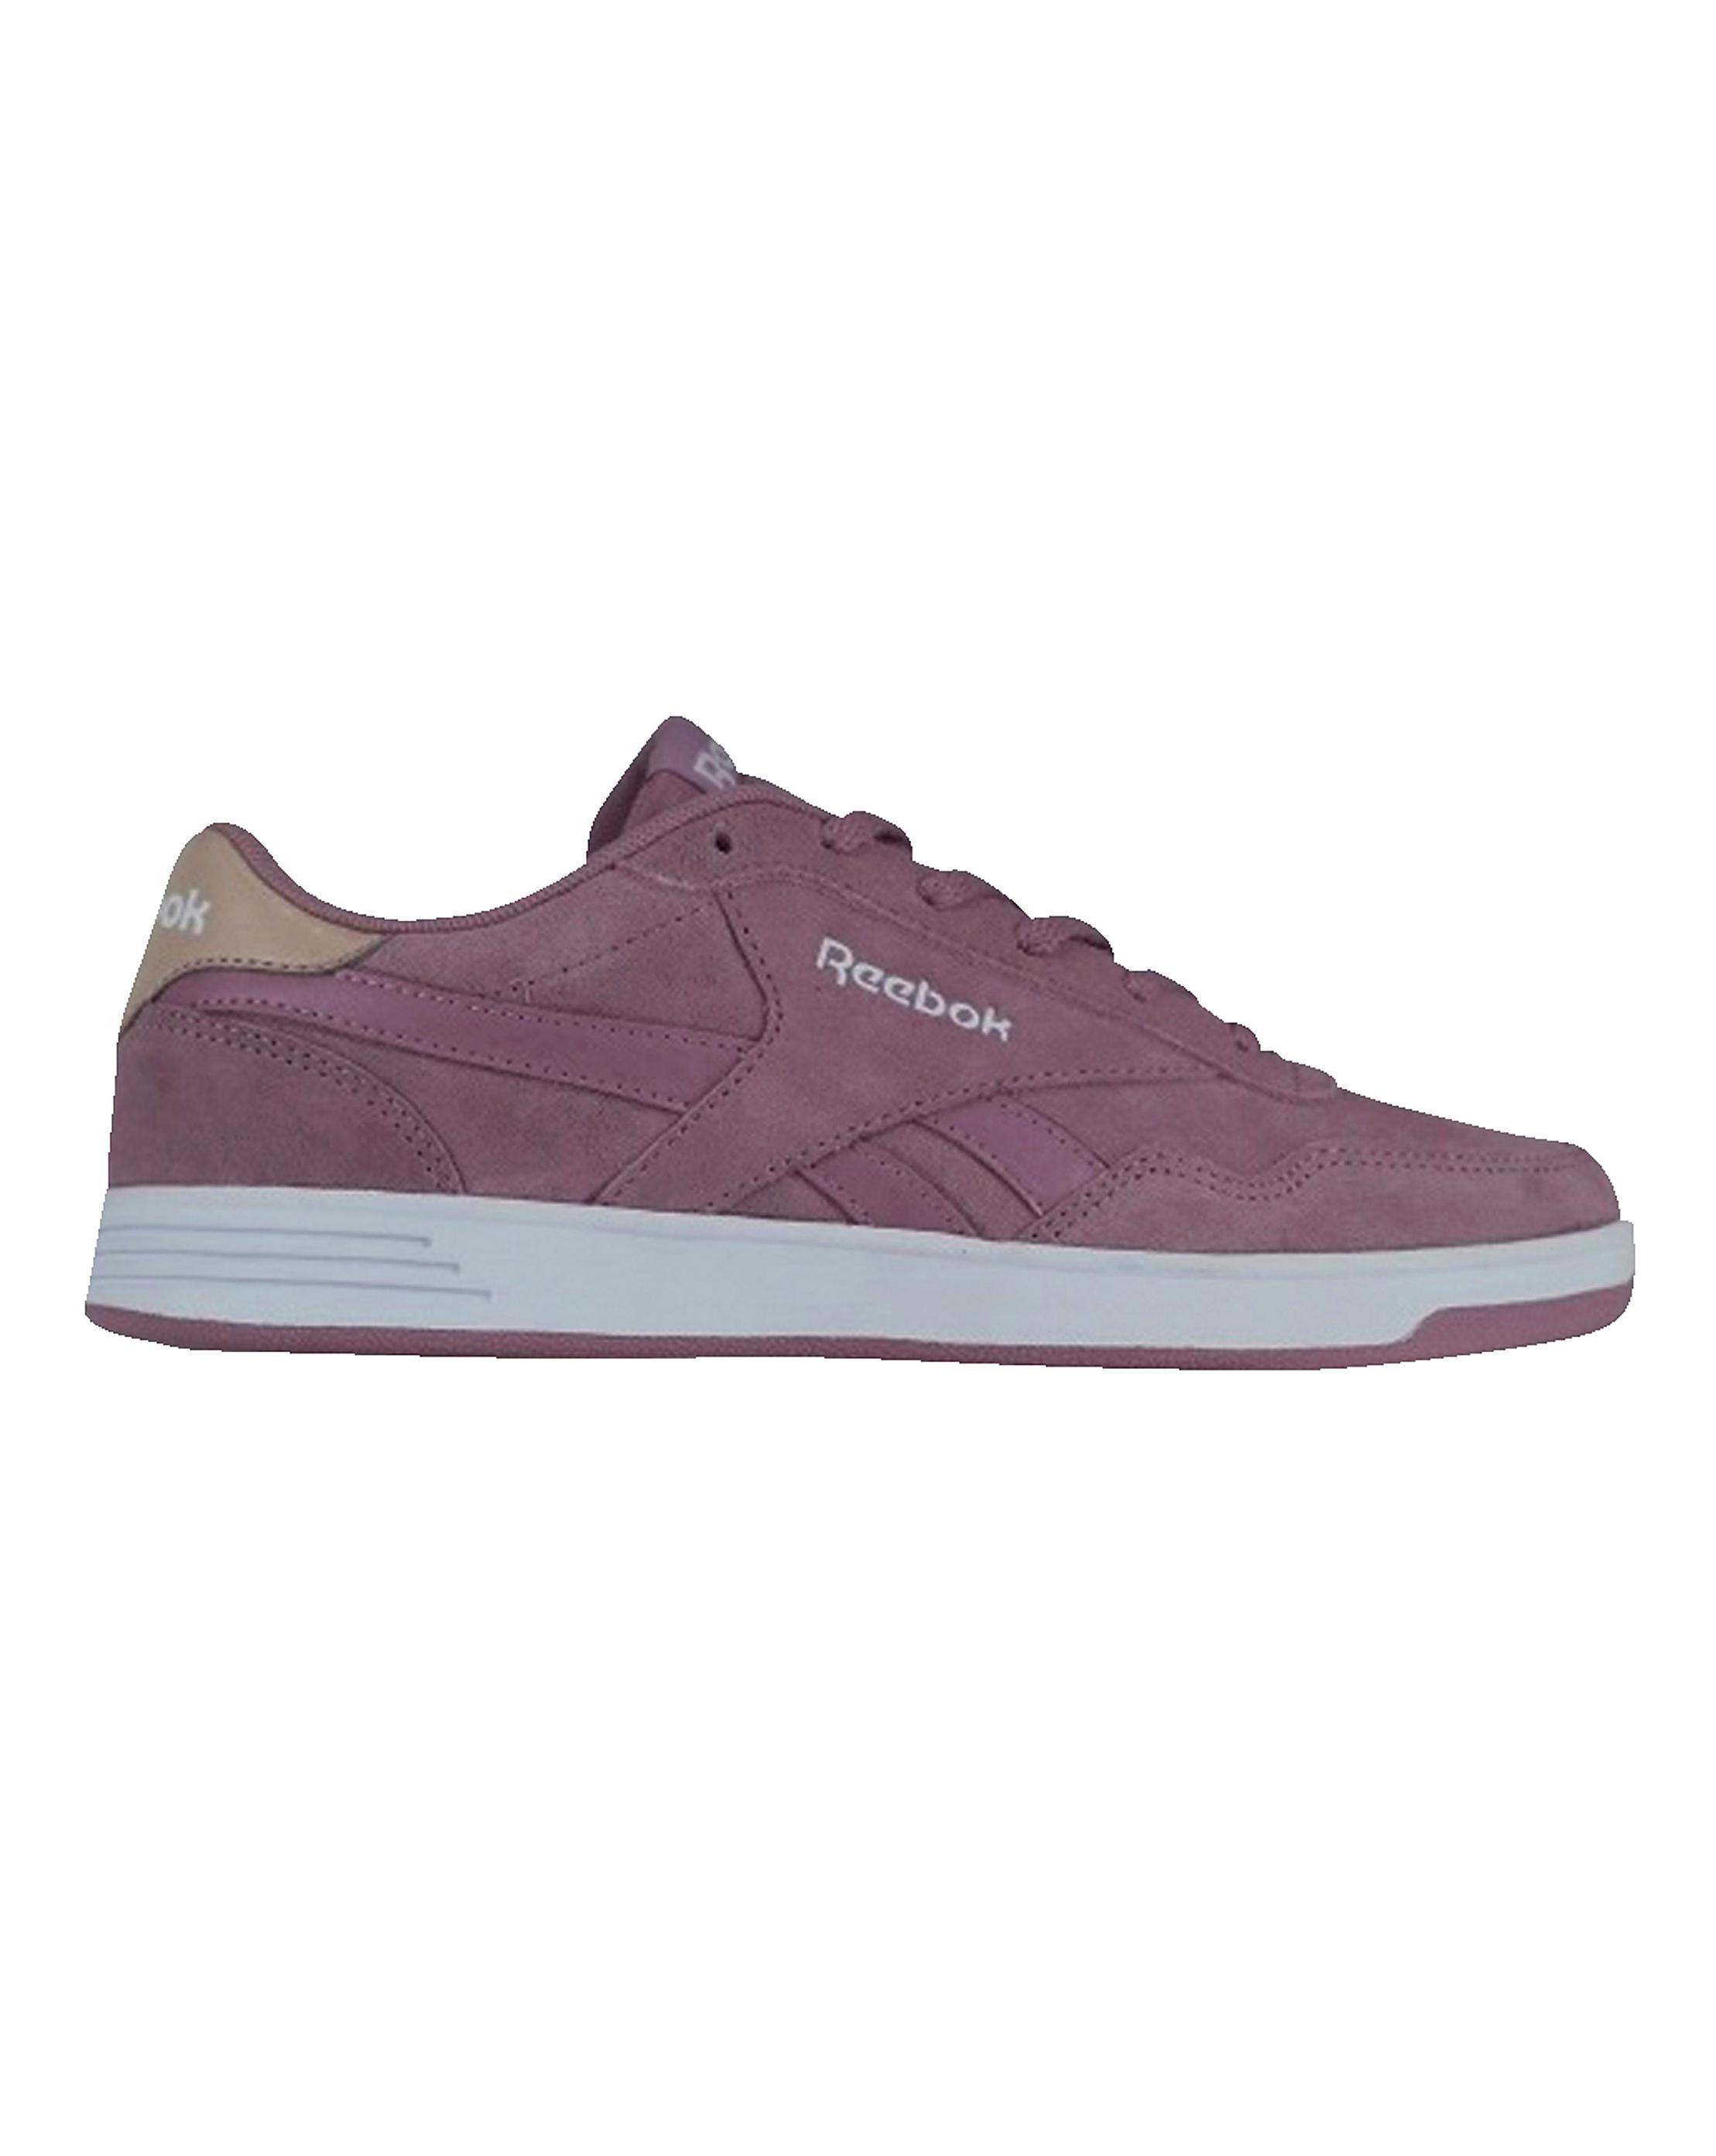 28c3f9ce8b4 Lyst - Simply Be Reebok Royal Technique Trainers in Purple